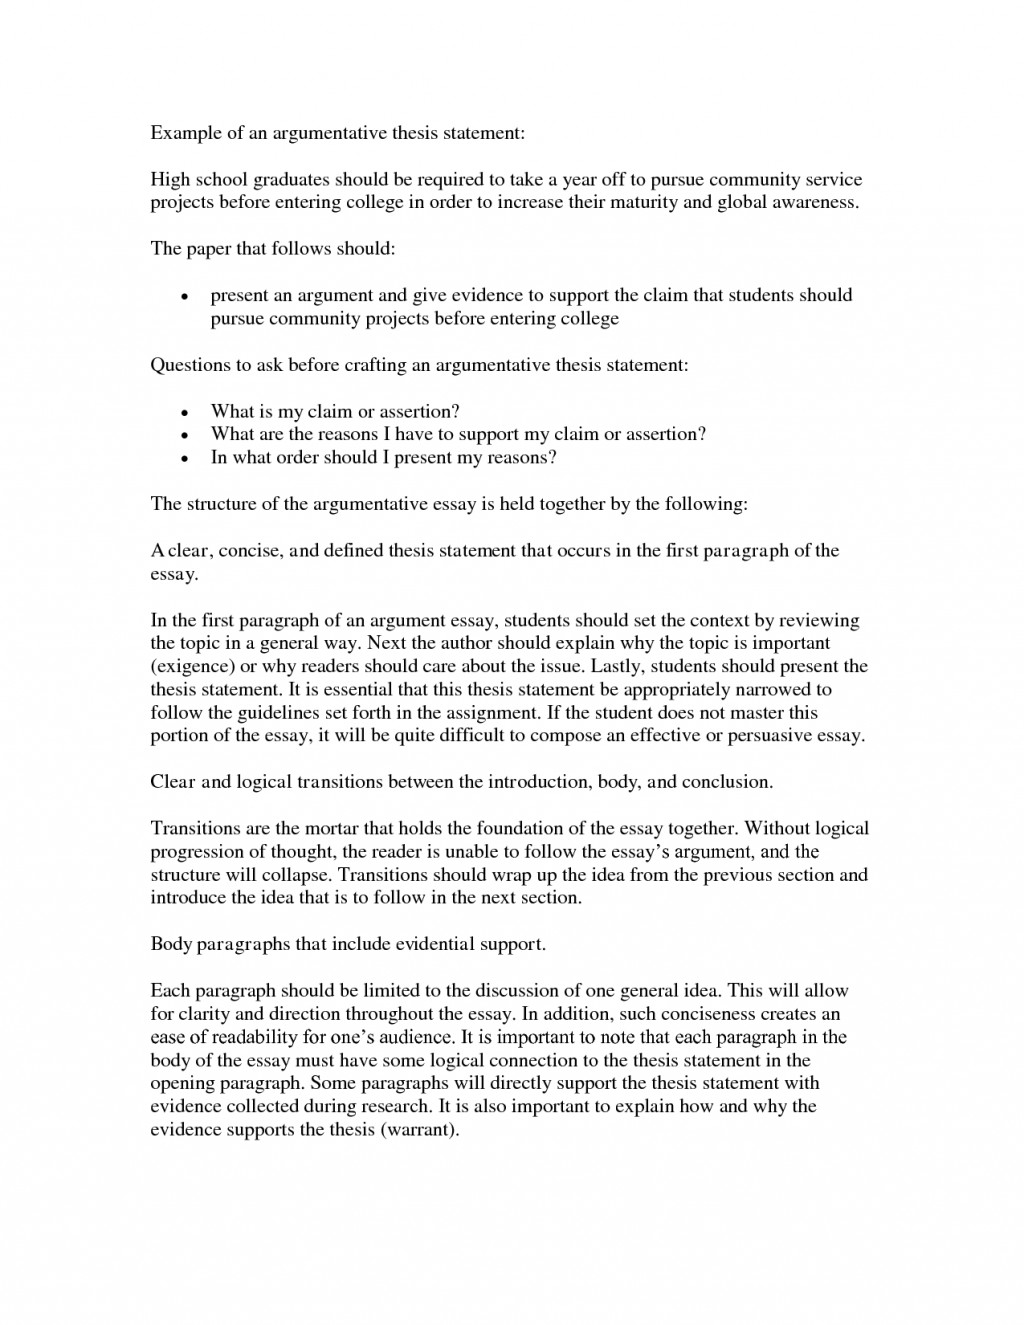 024 Research Paper Argument Thesis Wondrous Statements Argumentative Statement Examples Large